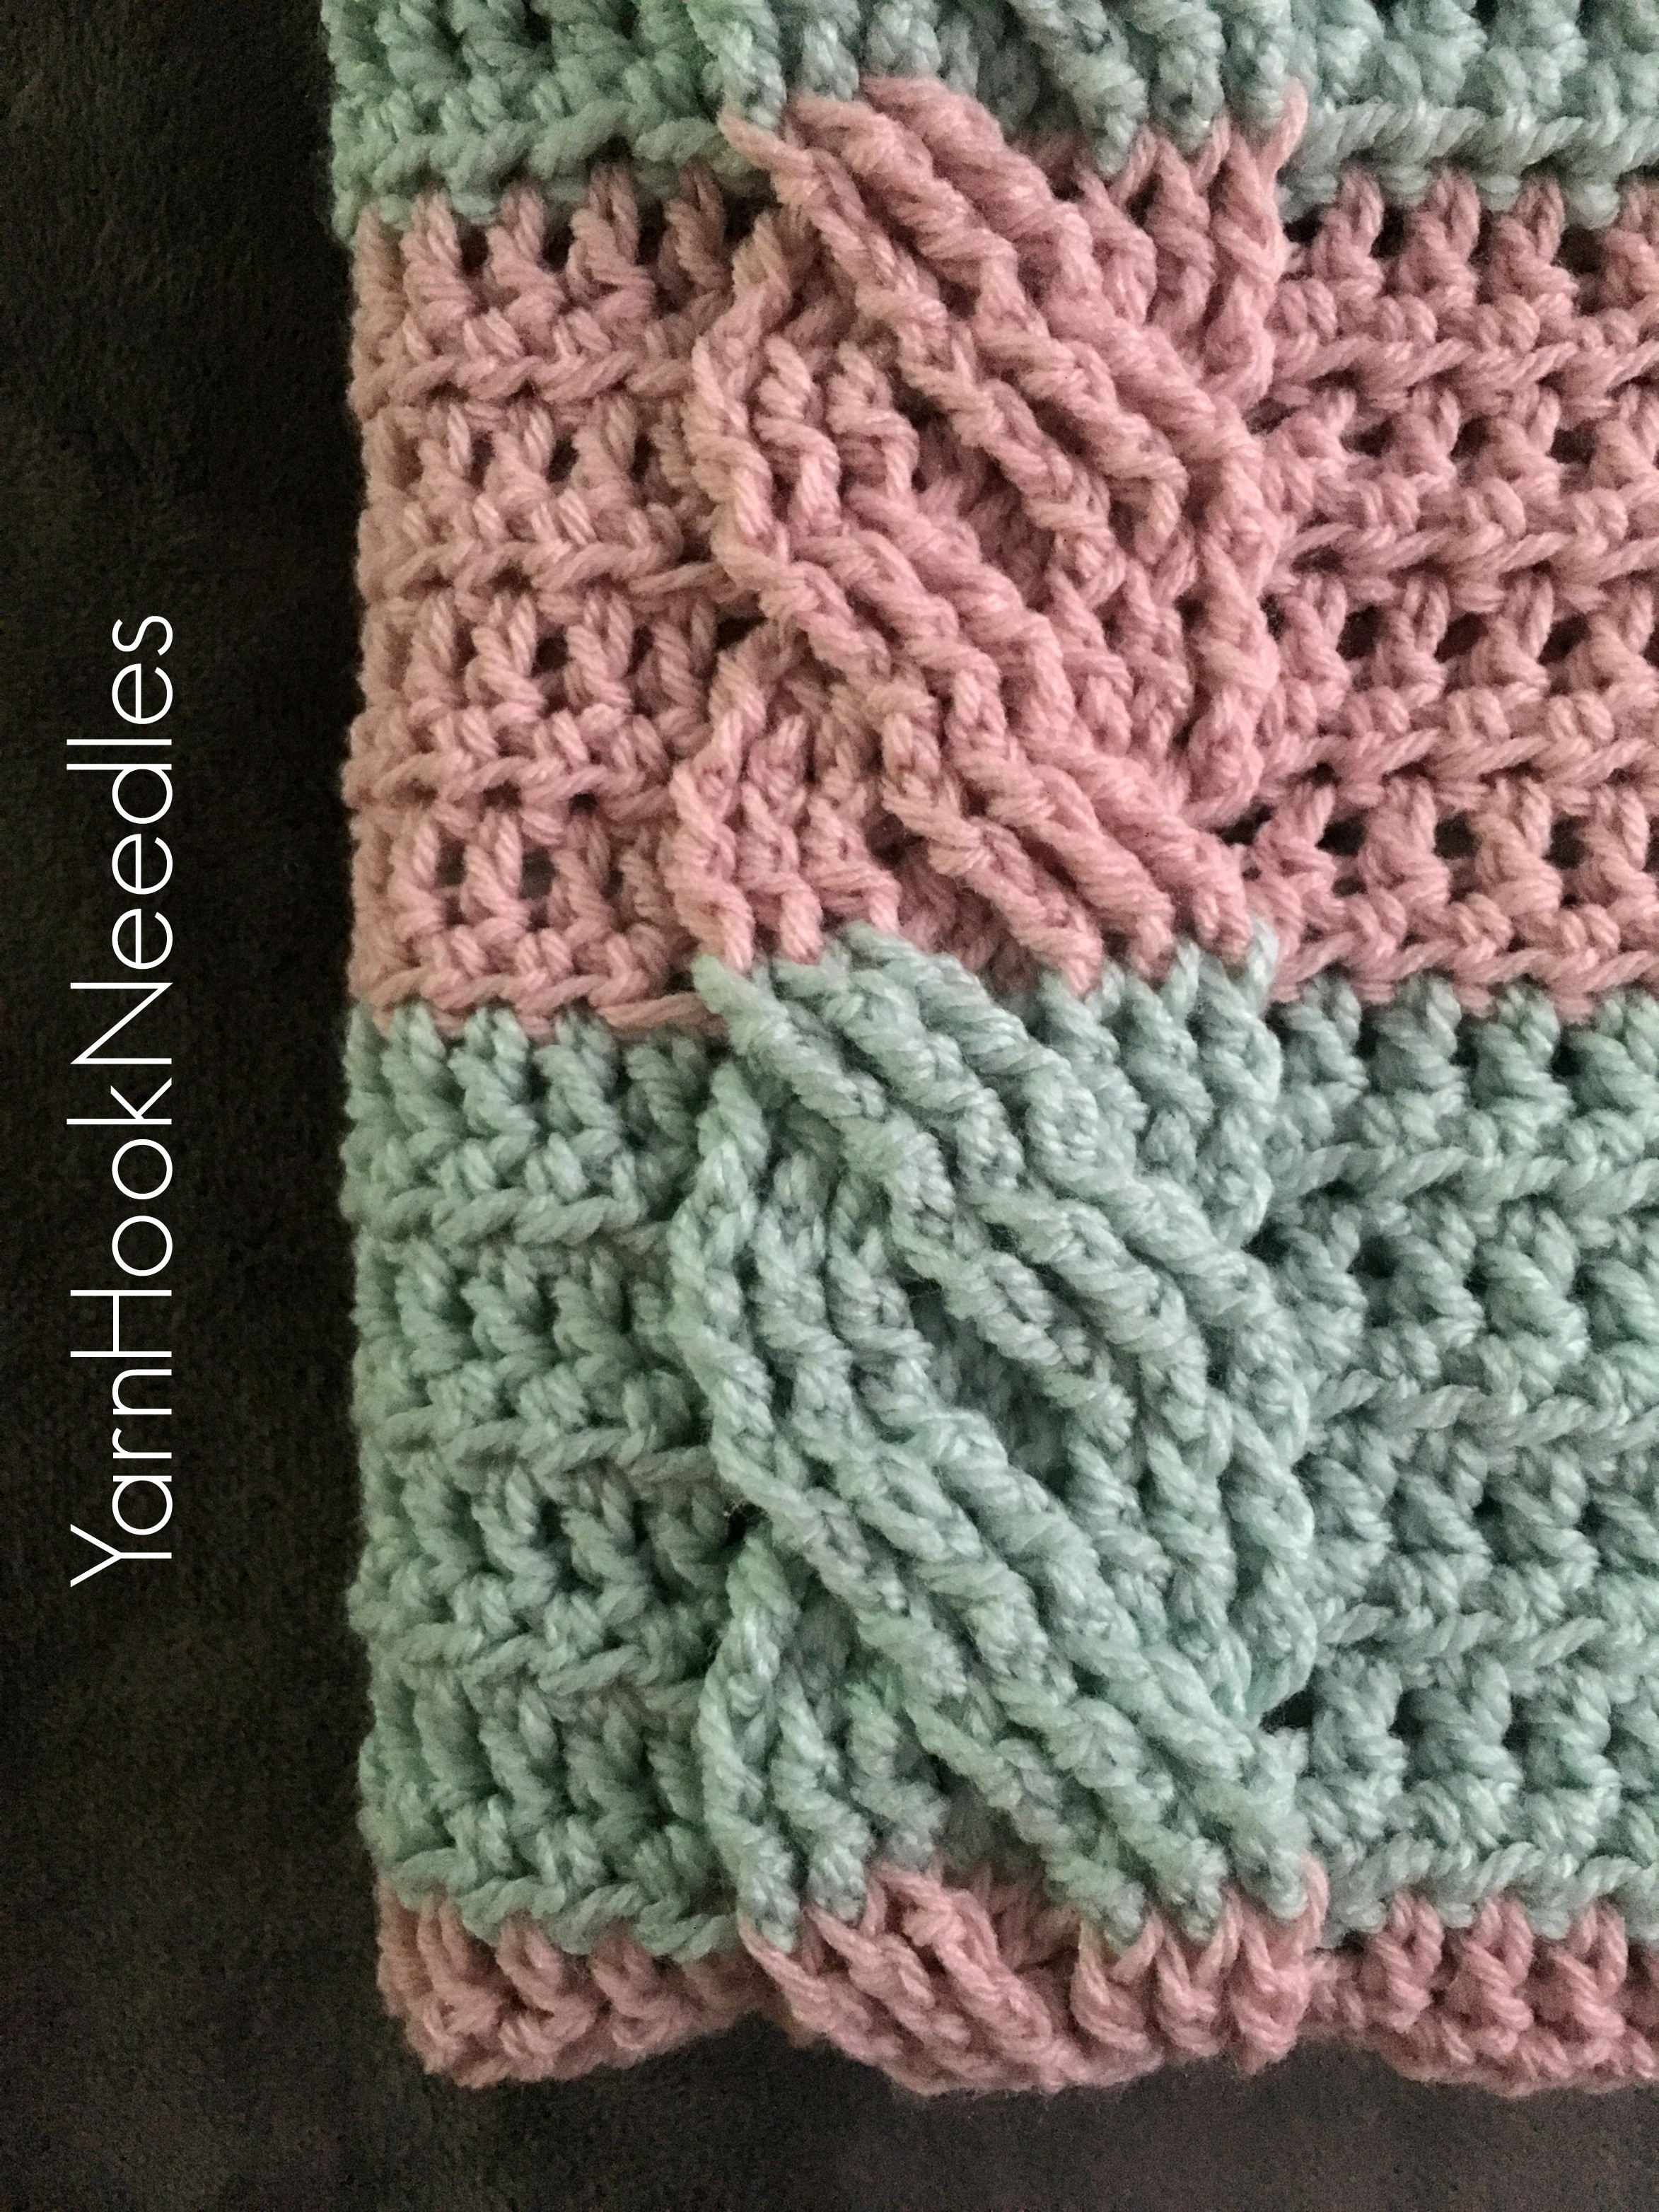 Awesome Crochet Cable Blanket with Free Pattern Yarnhookneedles Crochet Cable Blanket Of Lovely 46 Models Crochet Cable Blanket